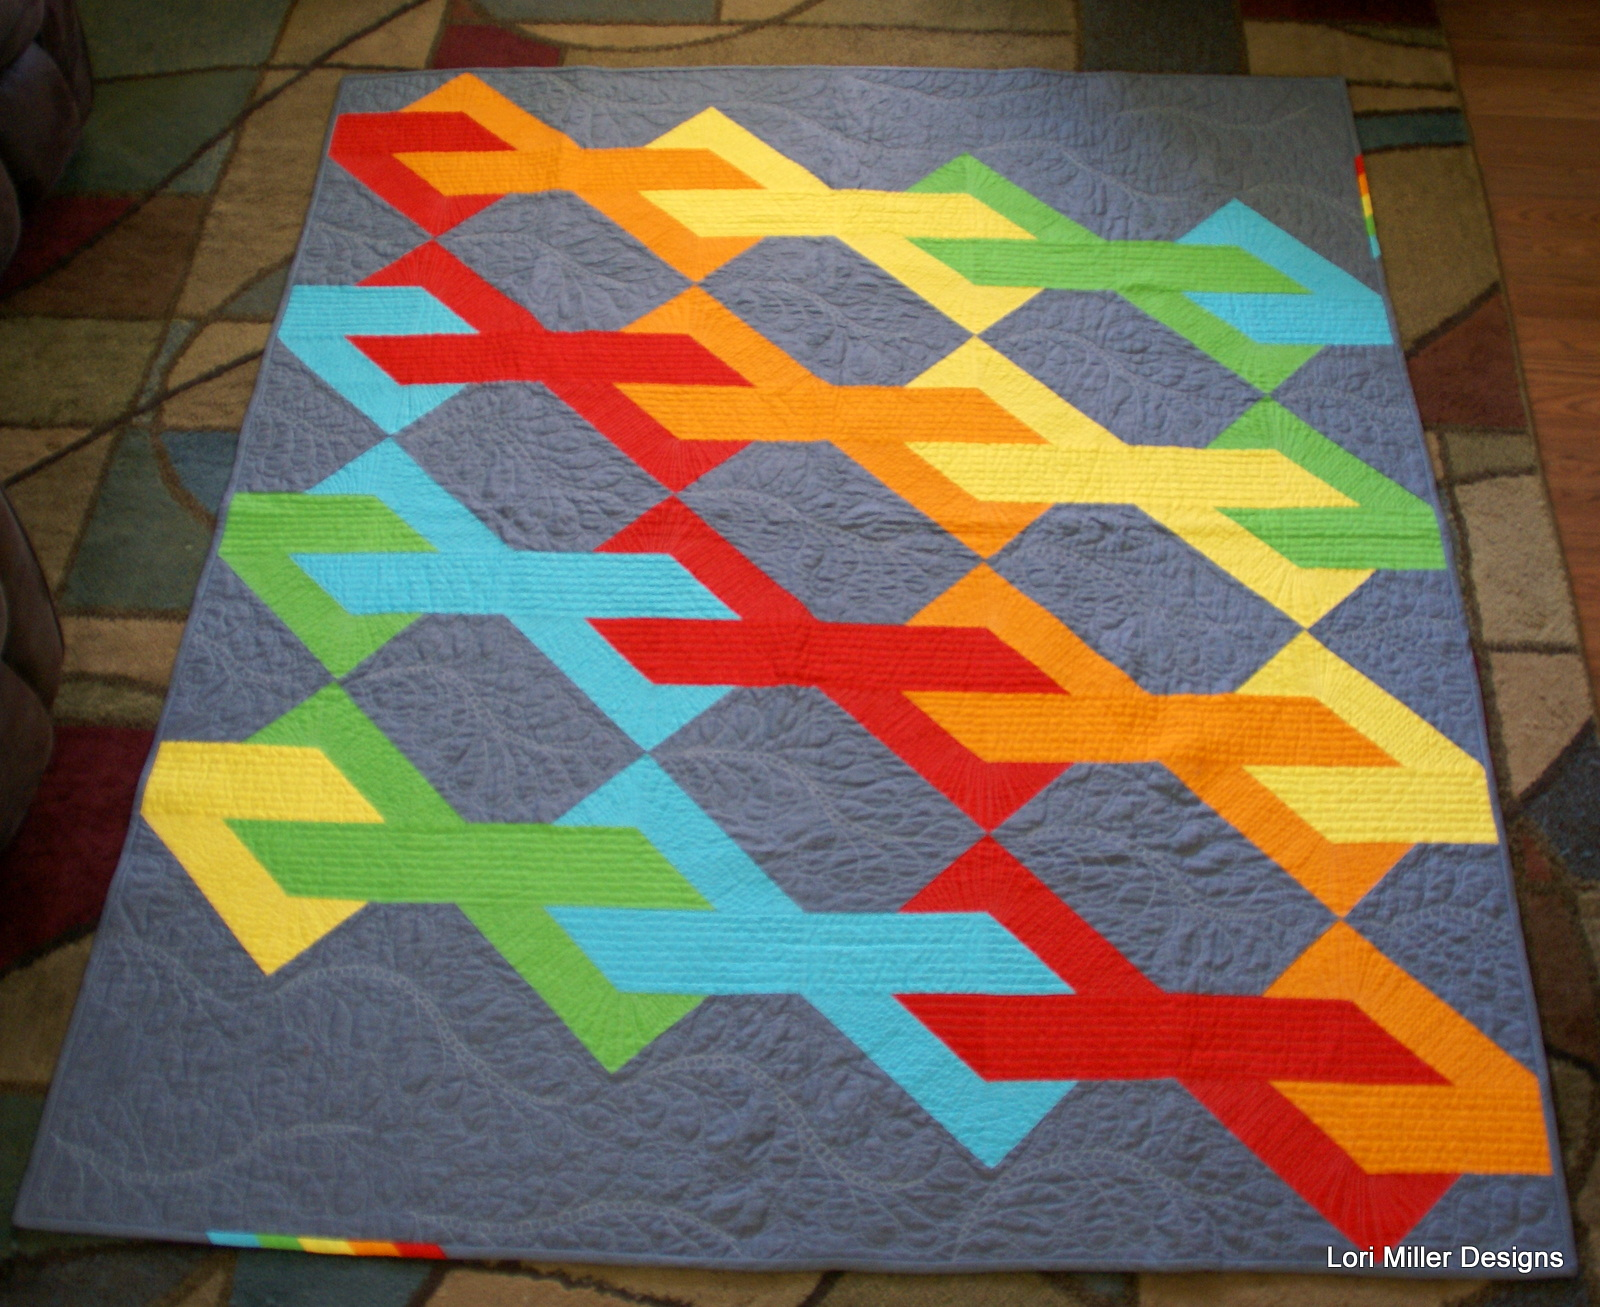 Infinity Quilt by Lori Miller Designs